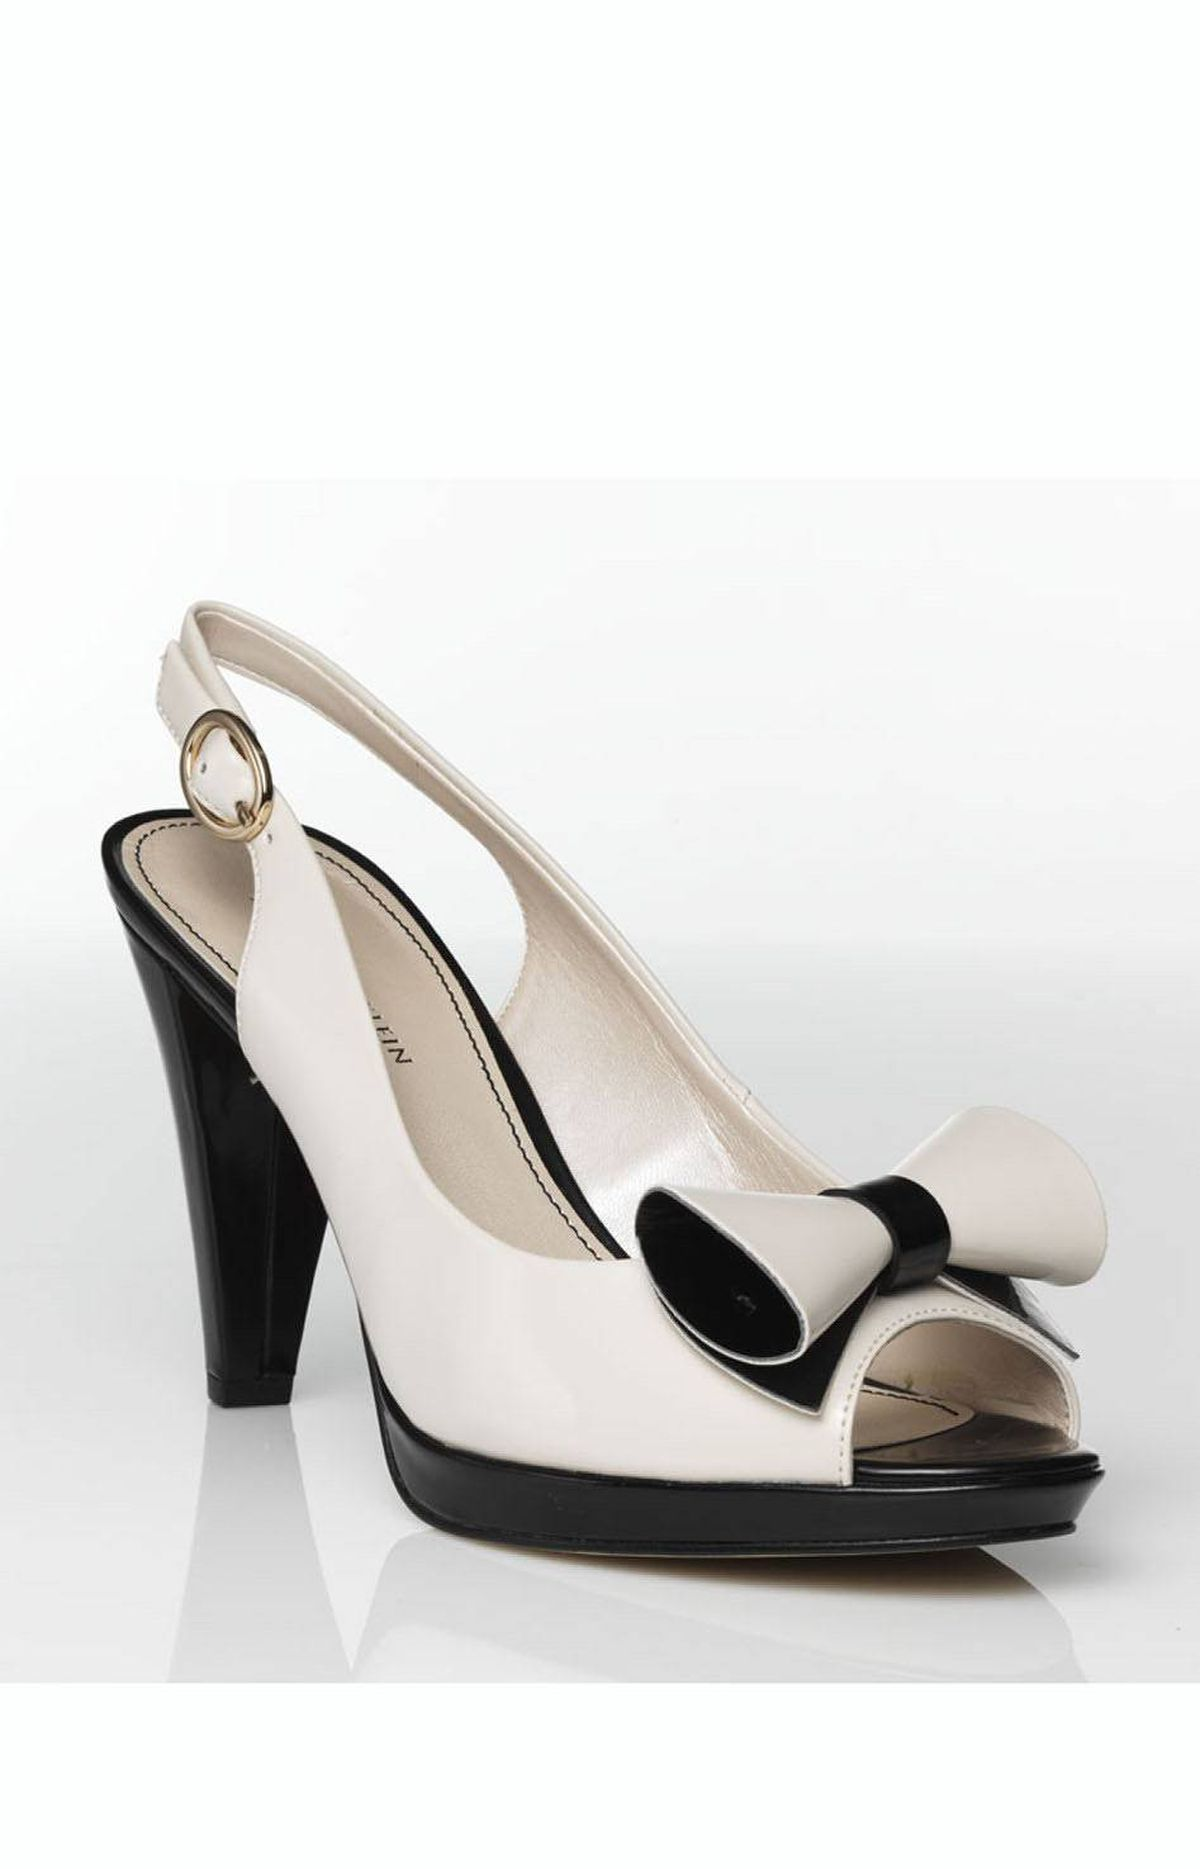 Slingbacks by AK Anne Klein, $125 at Town Shoes (www.townshoes.com).